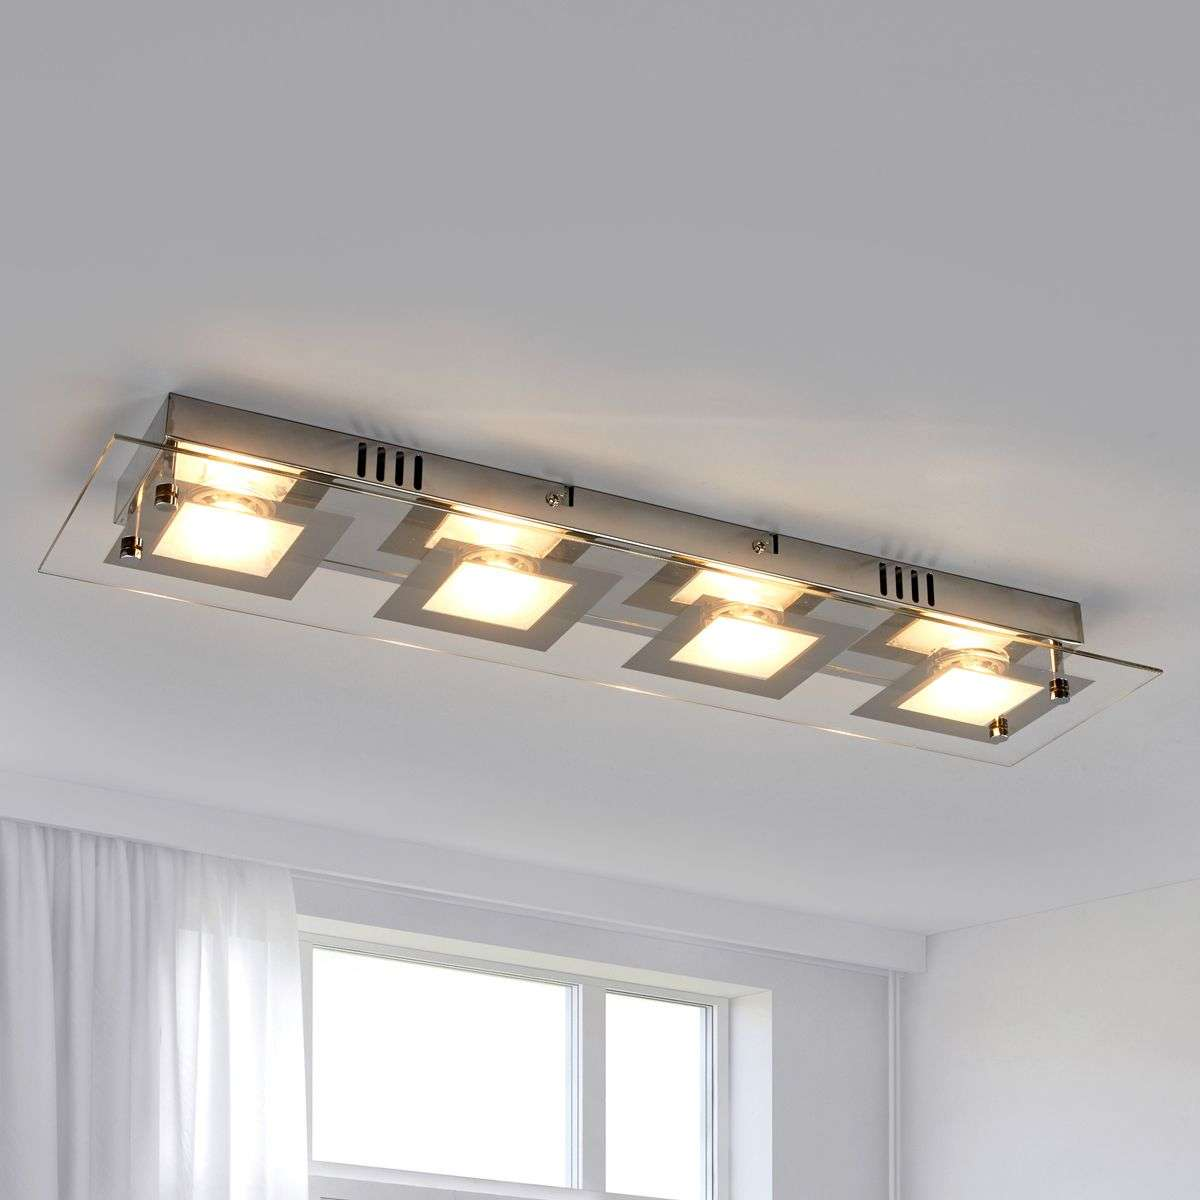 Rectangular led ceiling light manja with chrome lights rectangular led ceiling light manja with chrome mozeypictures Image collections